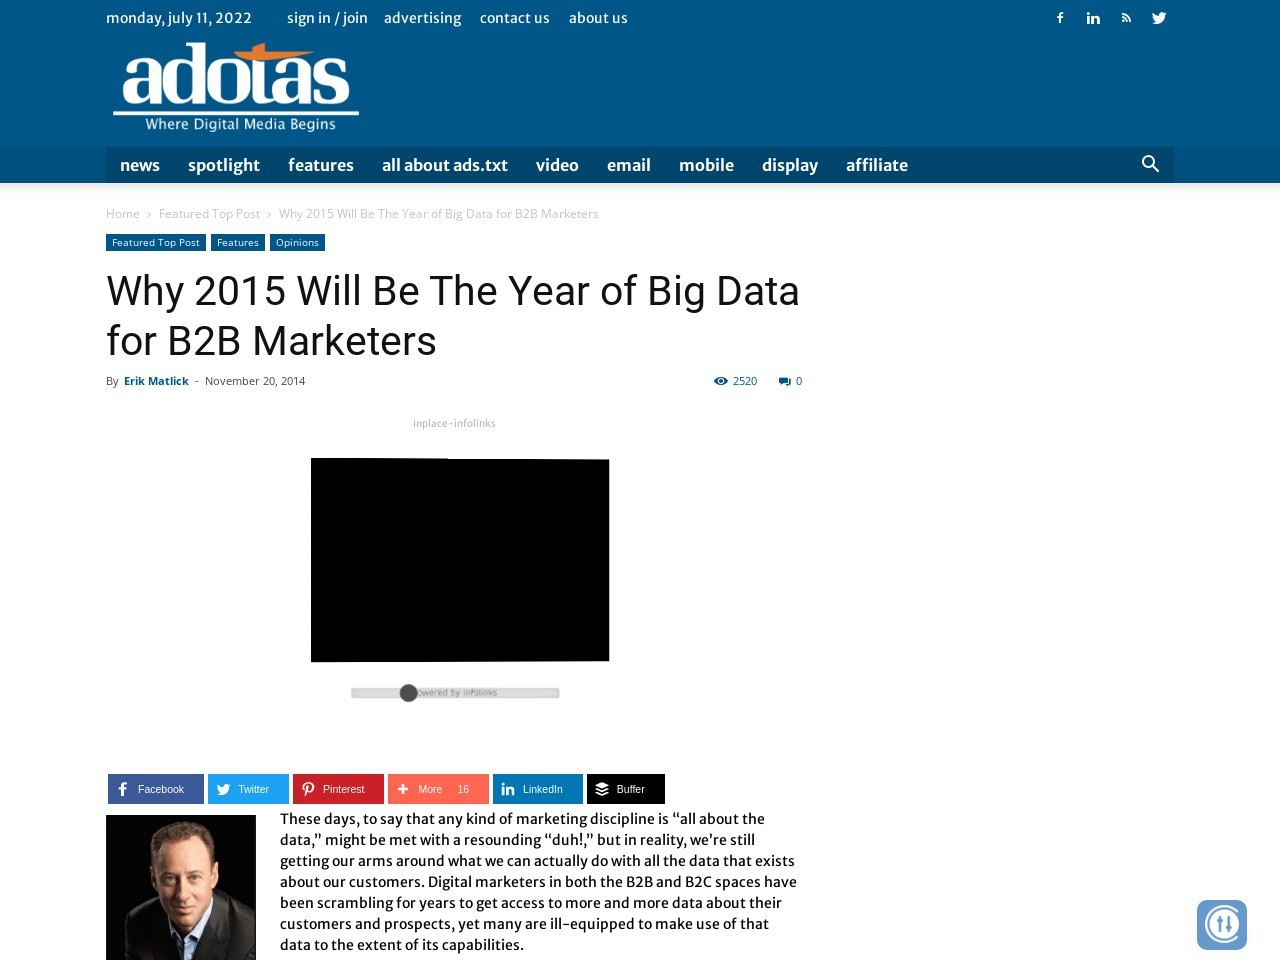 2015 Will Be The Year of Big Data for B2B Marketers